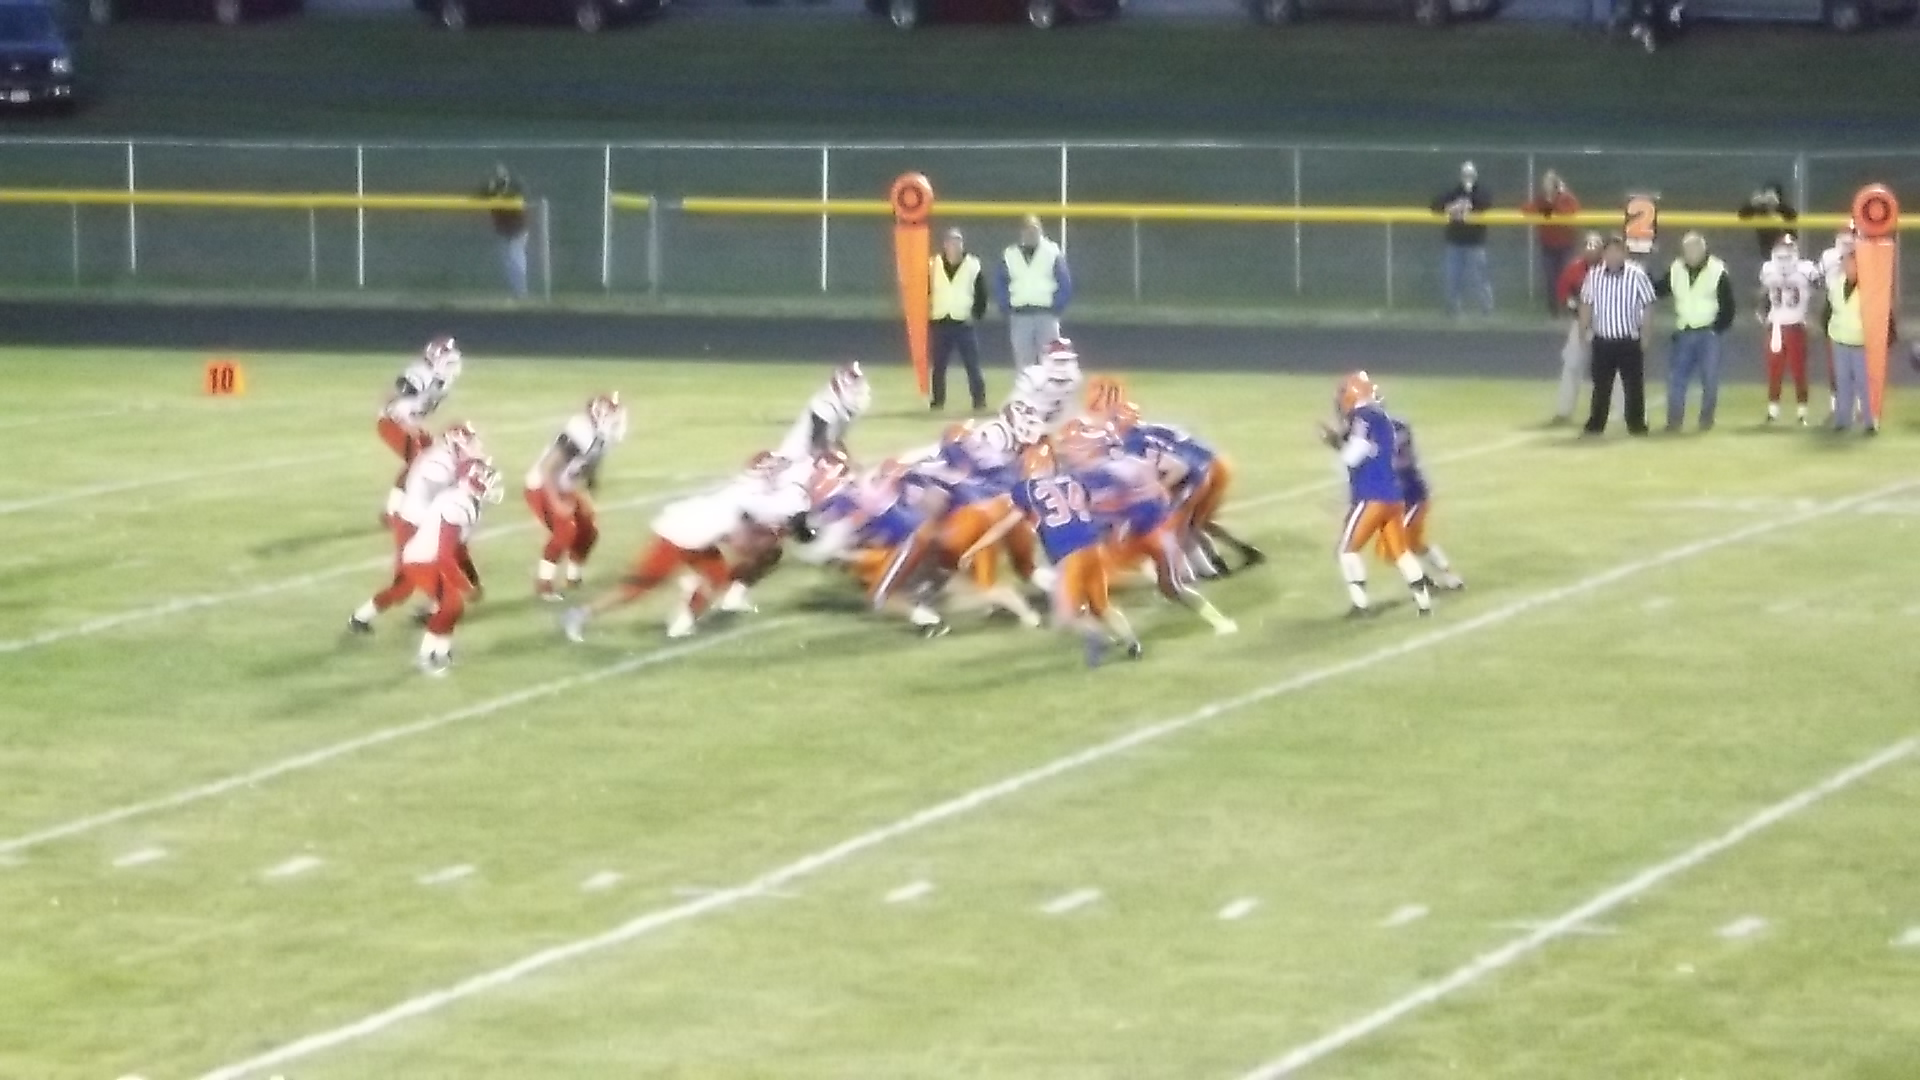 FOOTBALL: Livonia Crushes Hornell Under The Lights